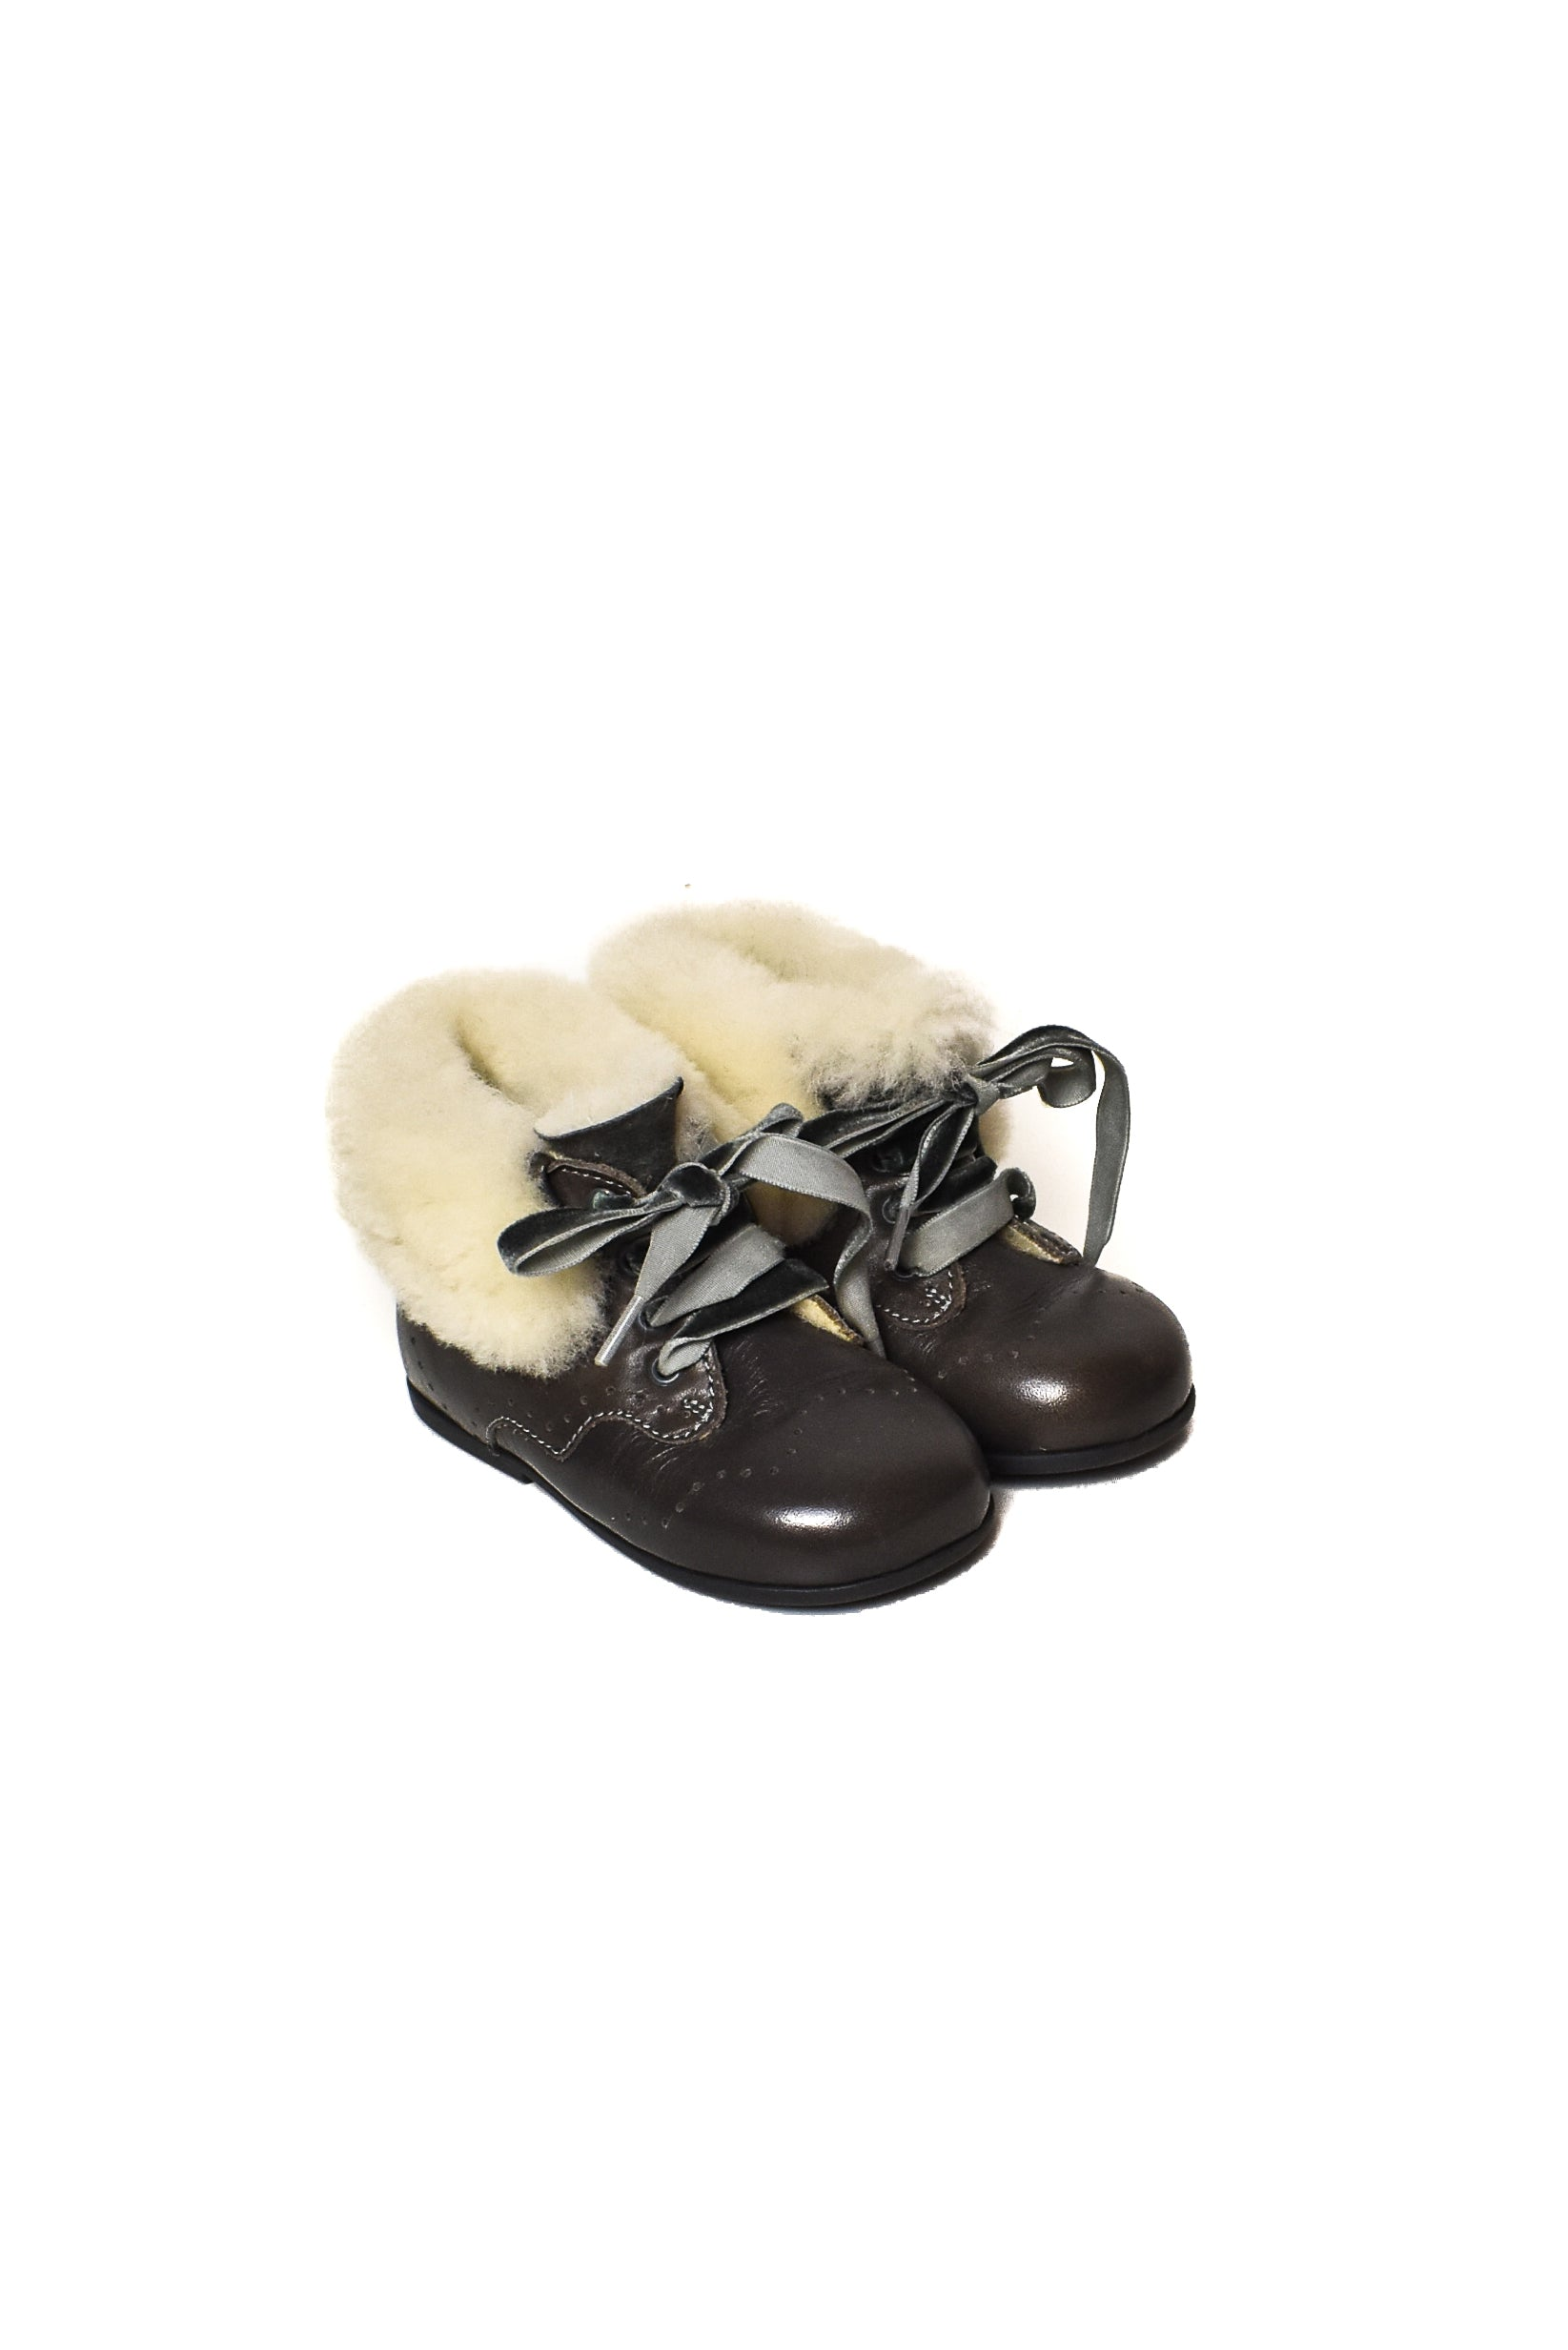 10008143 Jacadi Baby ~ Boots 18-24M (EU 22) at Retykle